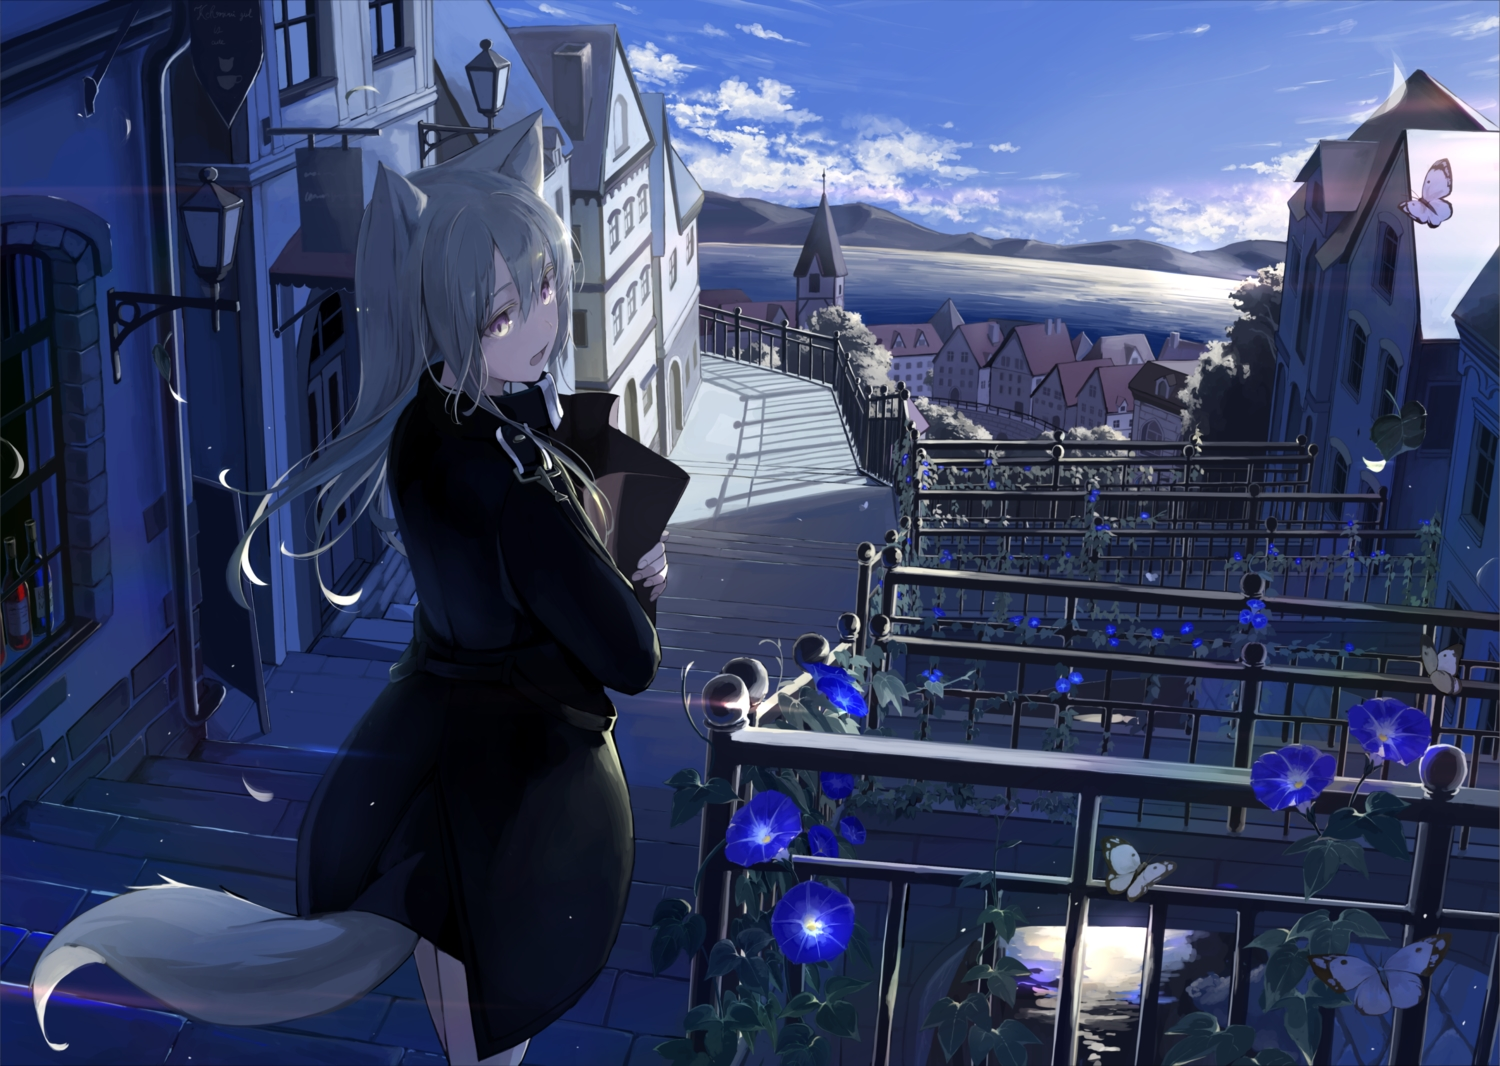 animal_ears butterfly clouds flowers gray_hair landscape long_hair mikisai original purple_eyes scenic sky tail